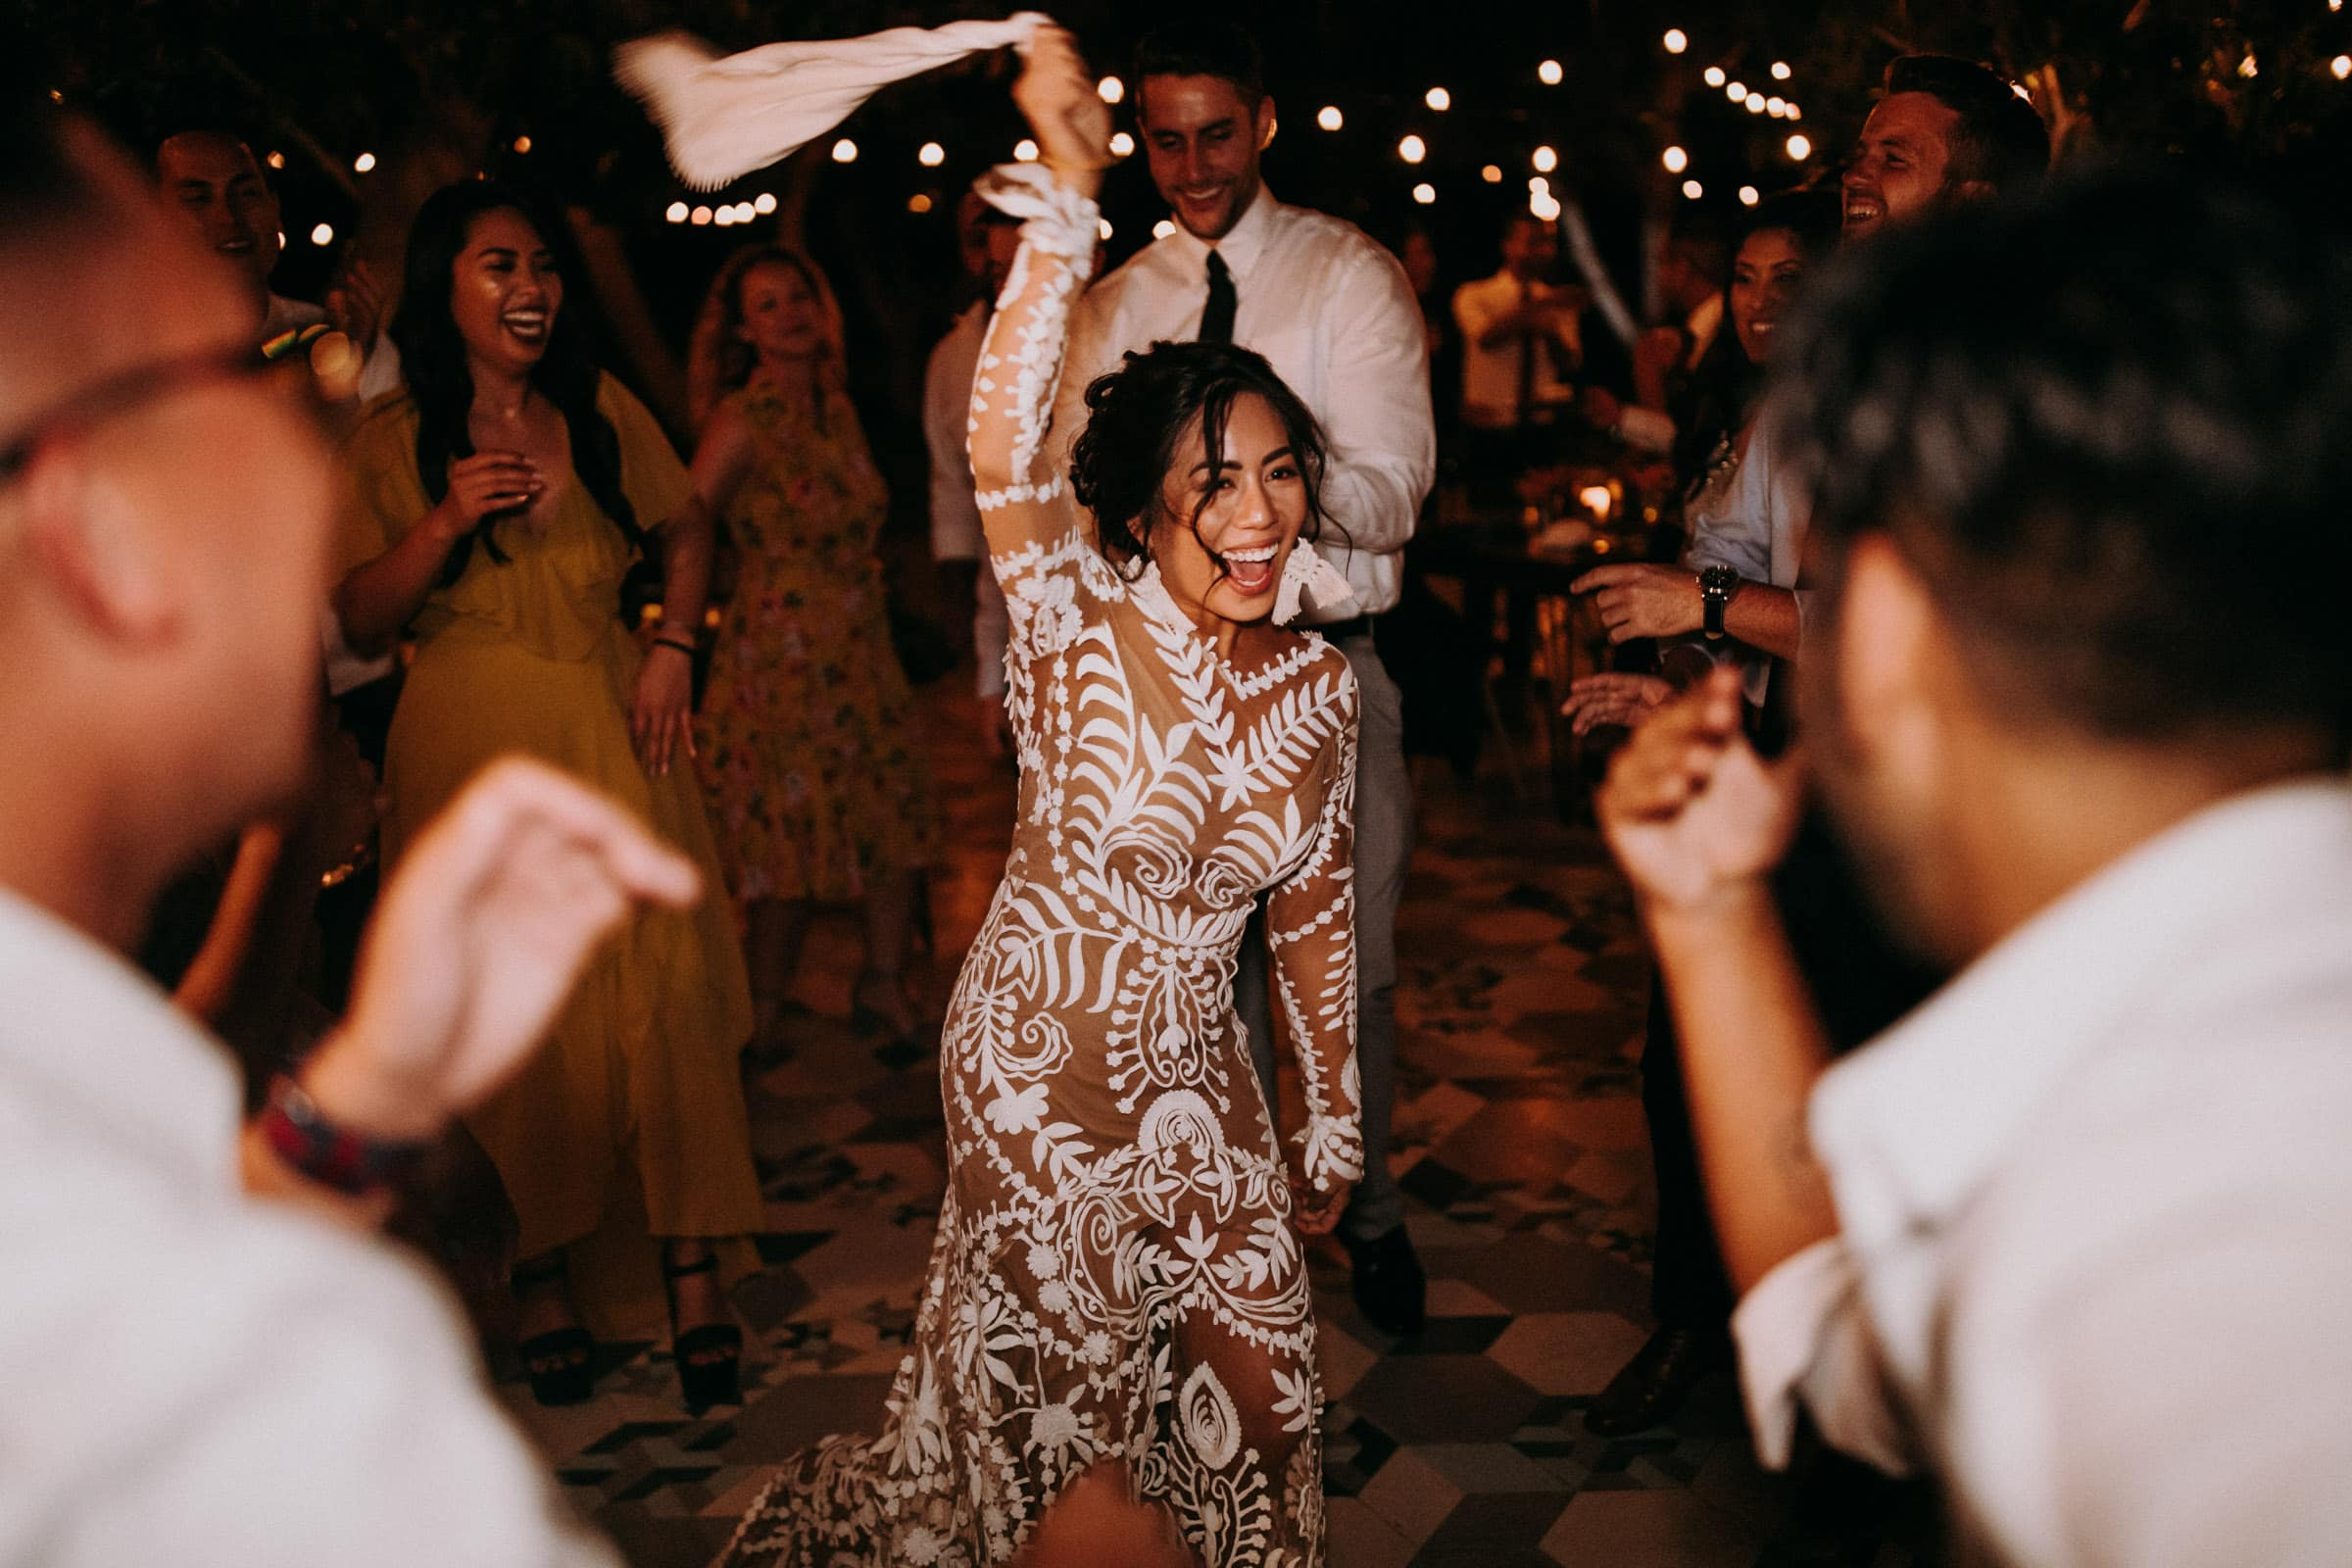 The bride is dancing next to her guest at the San Jose Del Cabo Wedding.